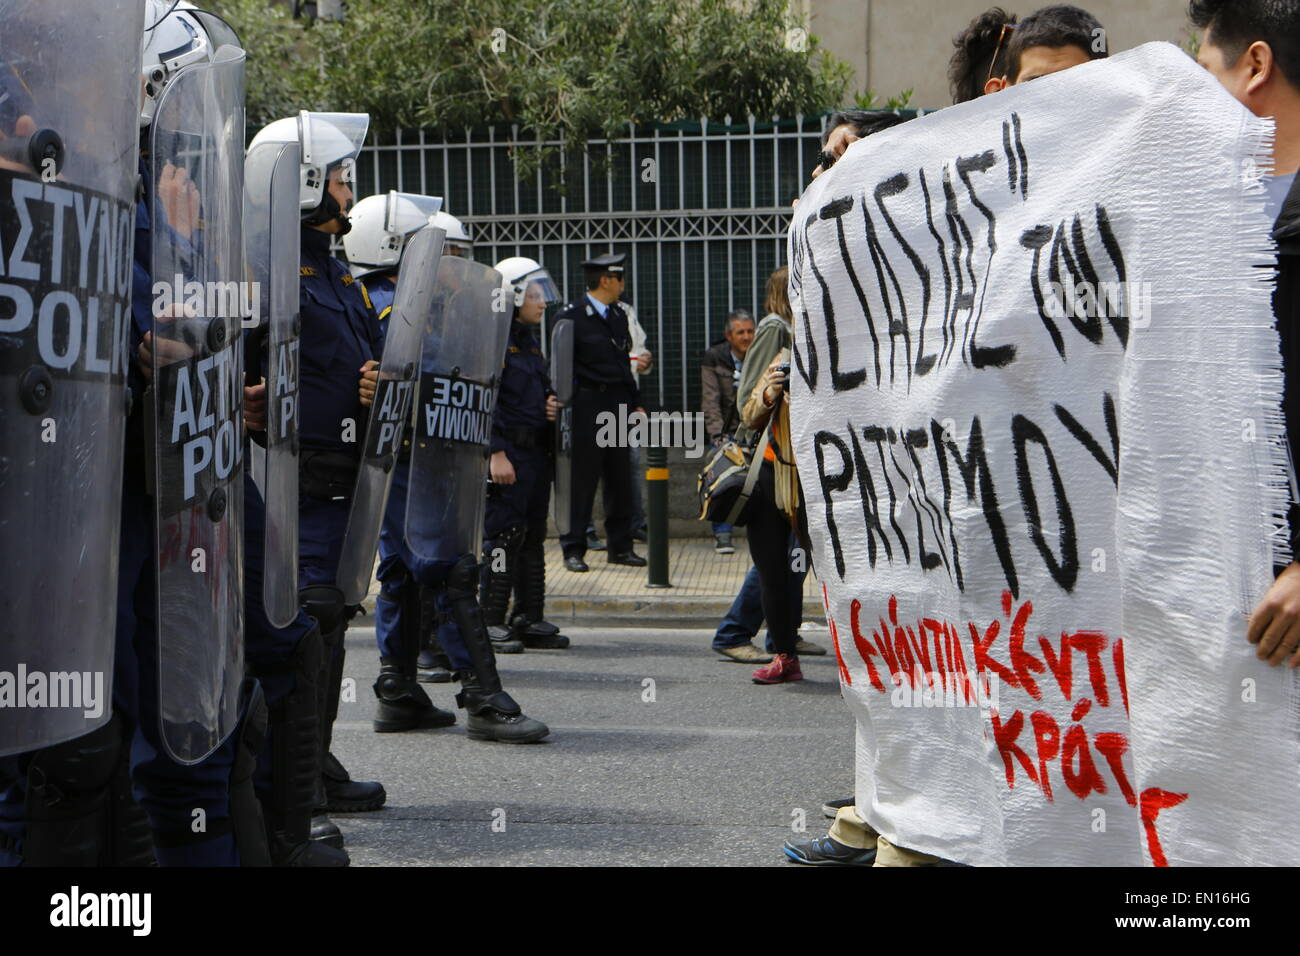 Athens, Greece. 25th April 2015. Pro-immigration protesters and riot police officers face each other outside the - Stock Image